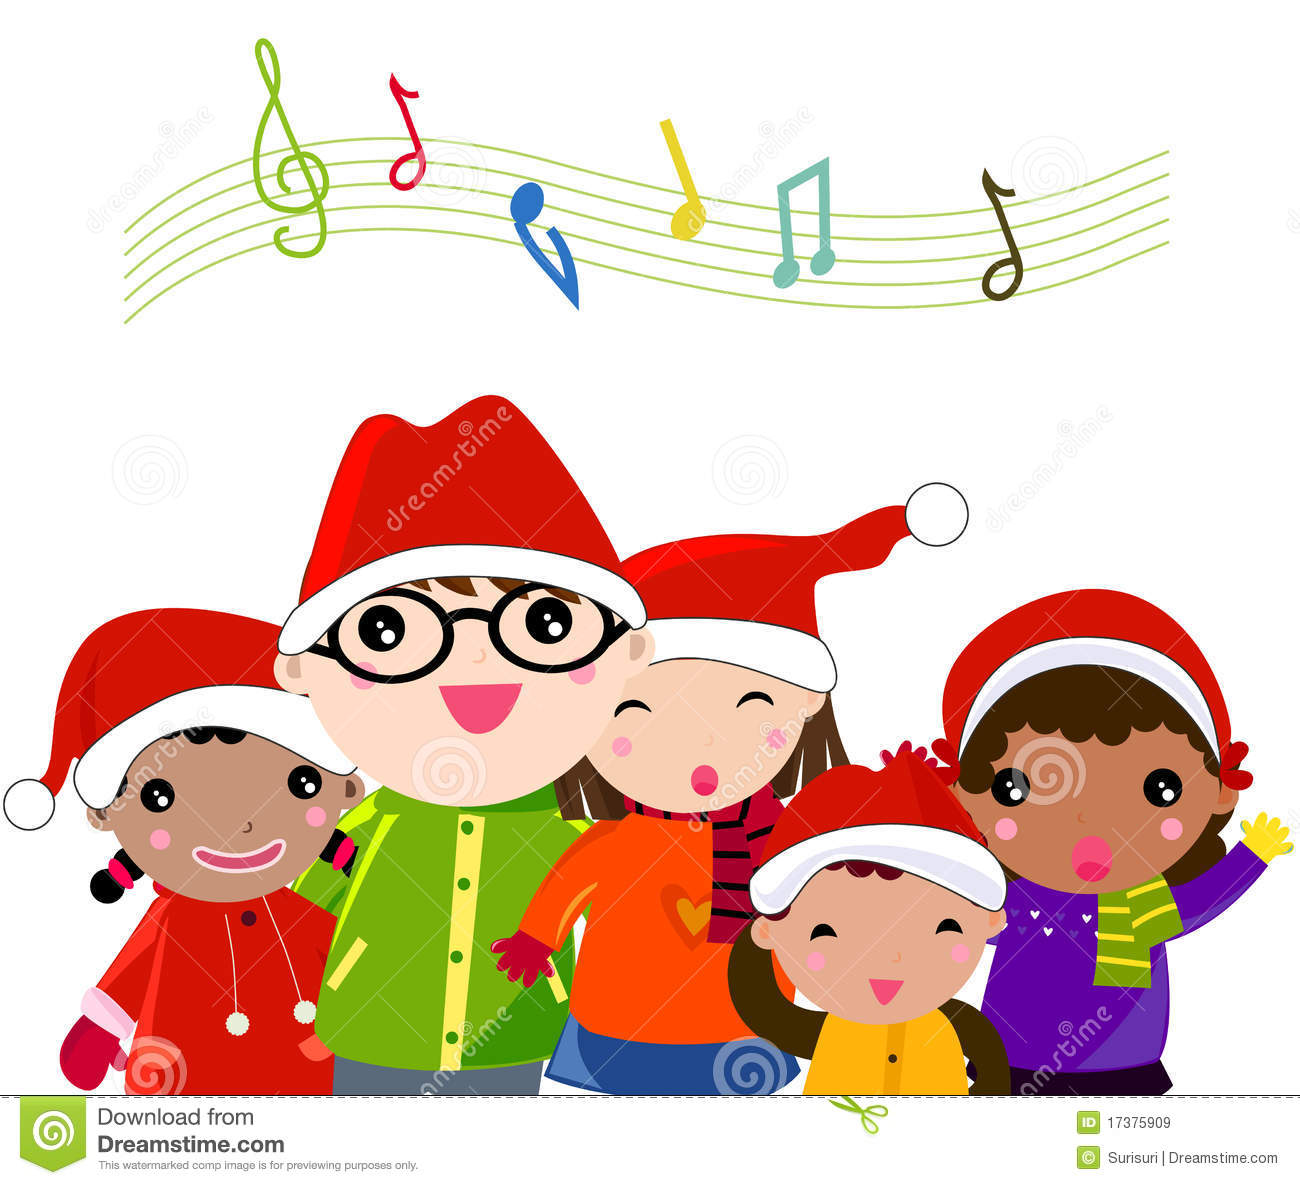 Christmas Carol stock vector. Illustration of green, musical - 17375909